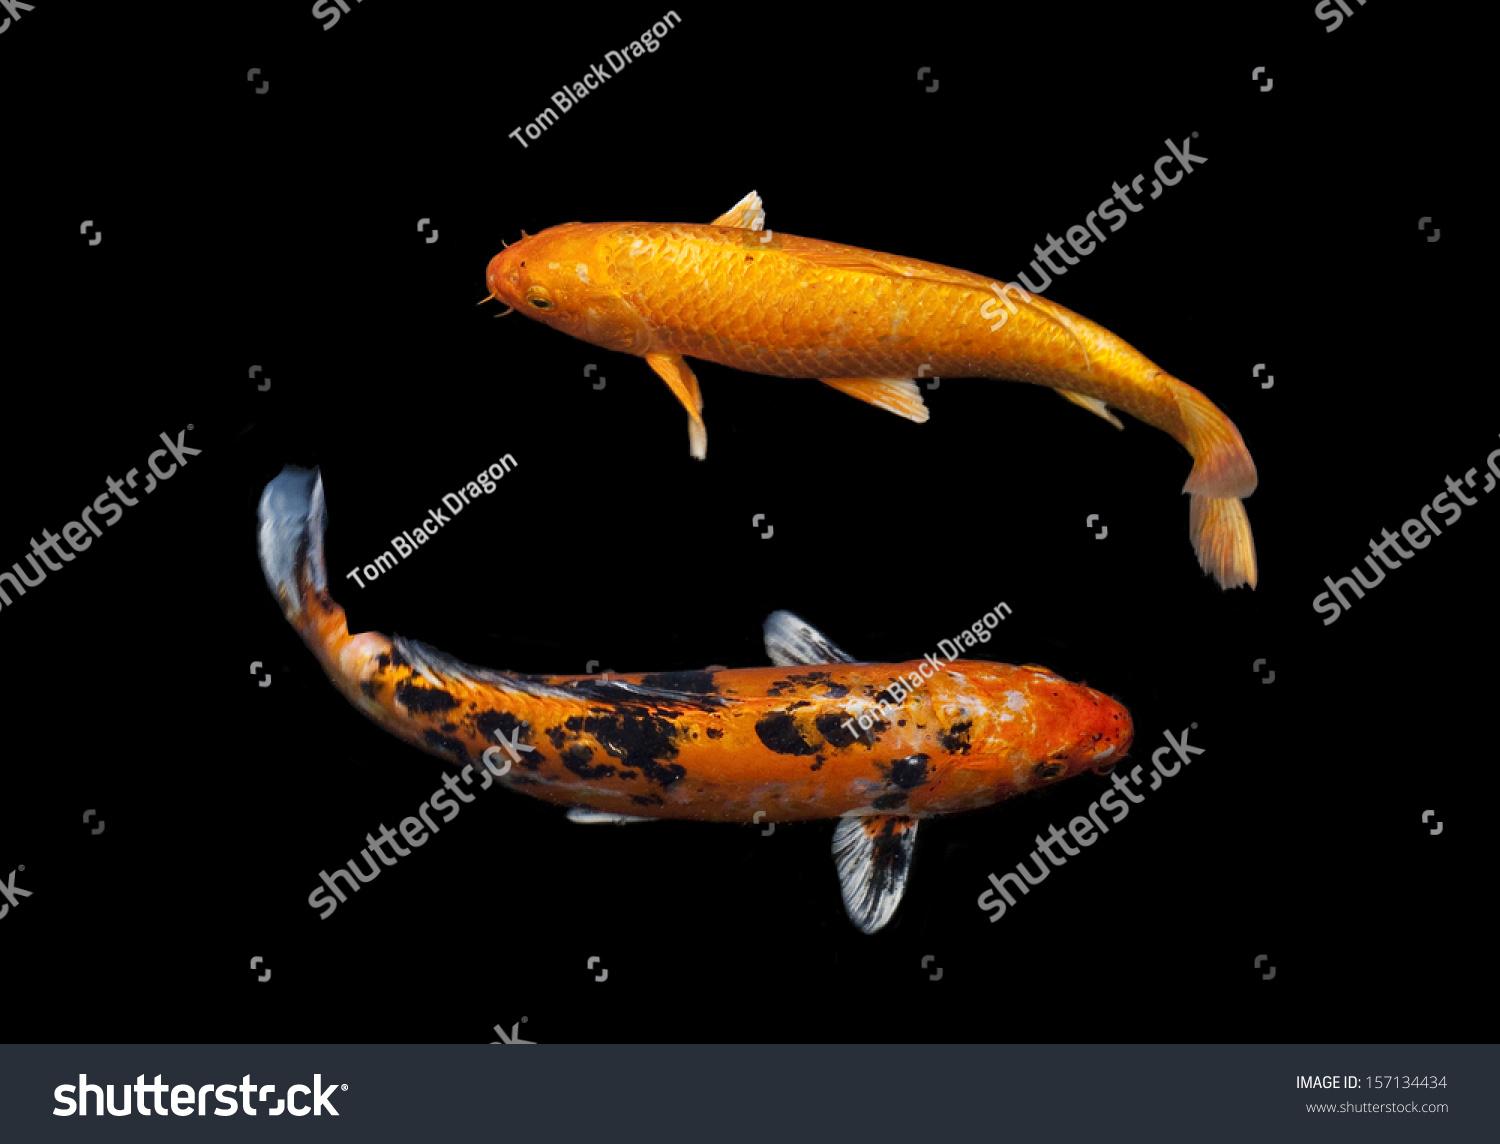 Koi fish swim pondisolate background blackfancy stock for Freshwater koi fish